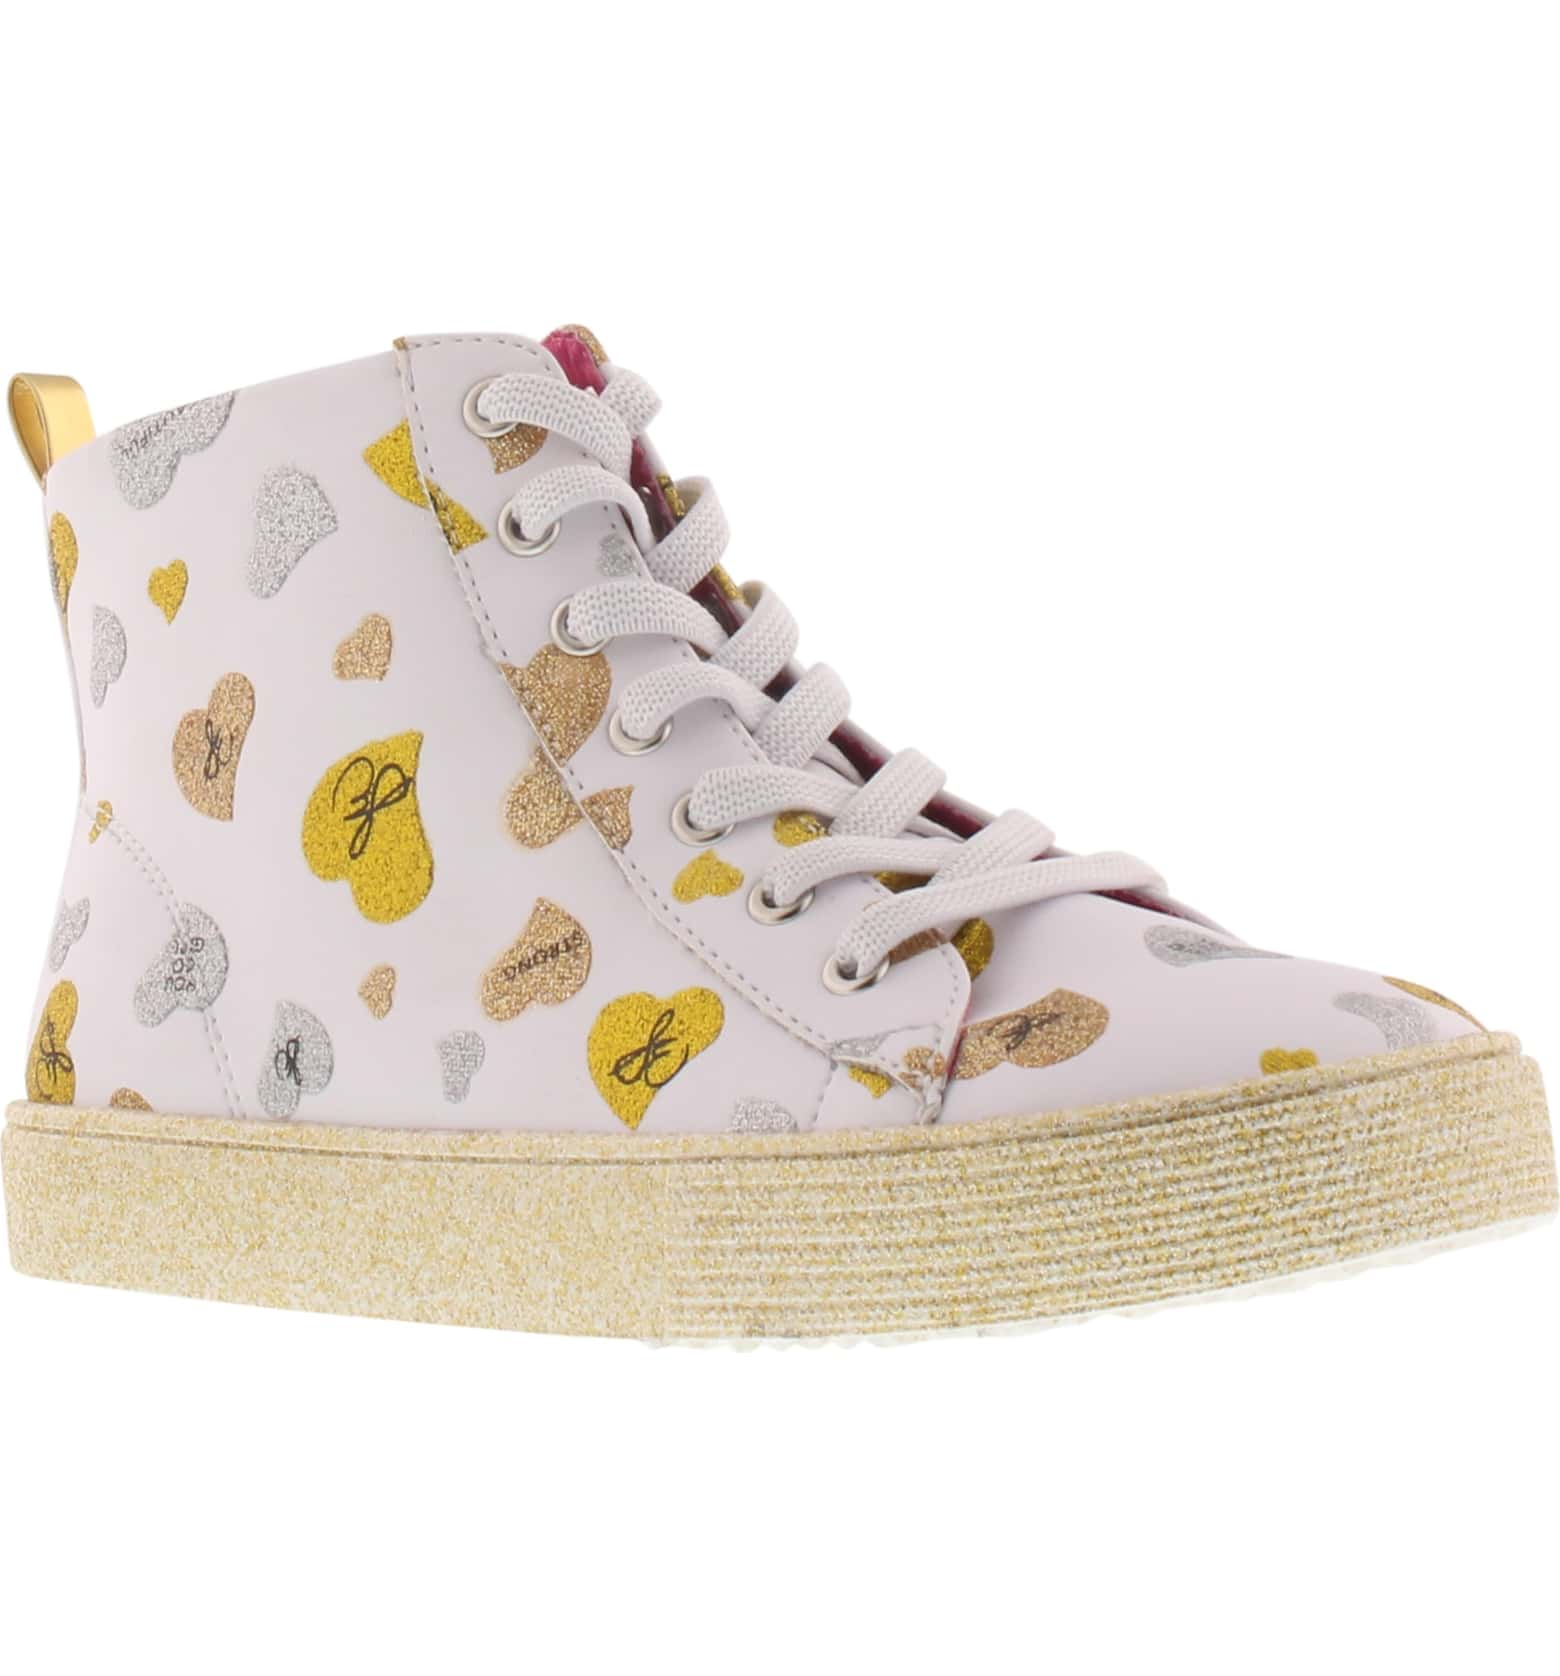 Sam Edelman Bella Whimsical Glitter High Top Sneaker